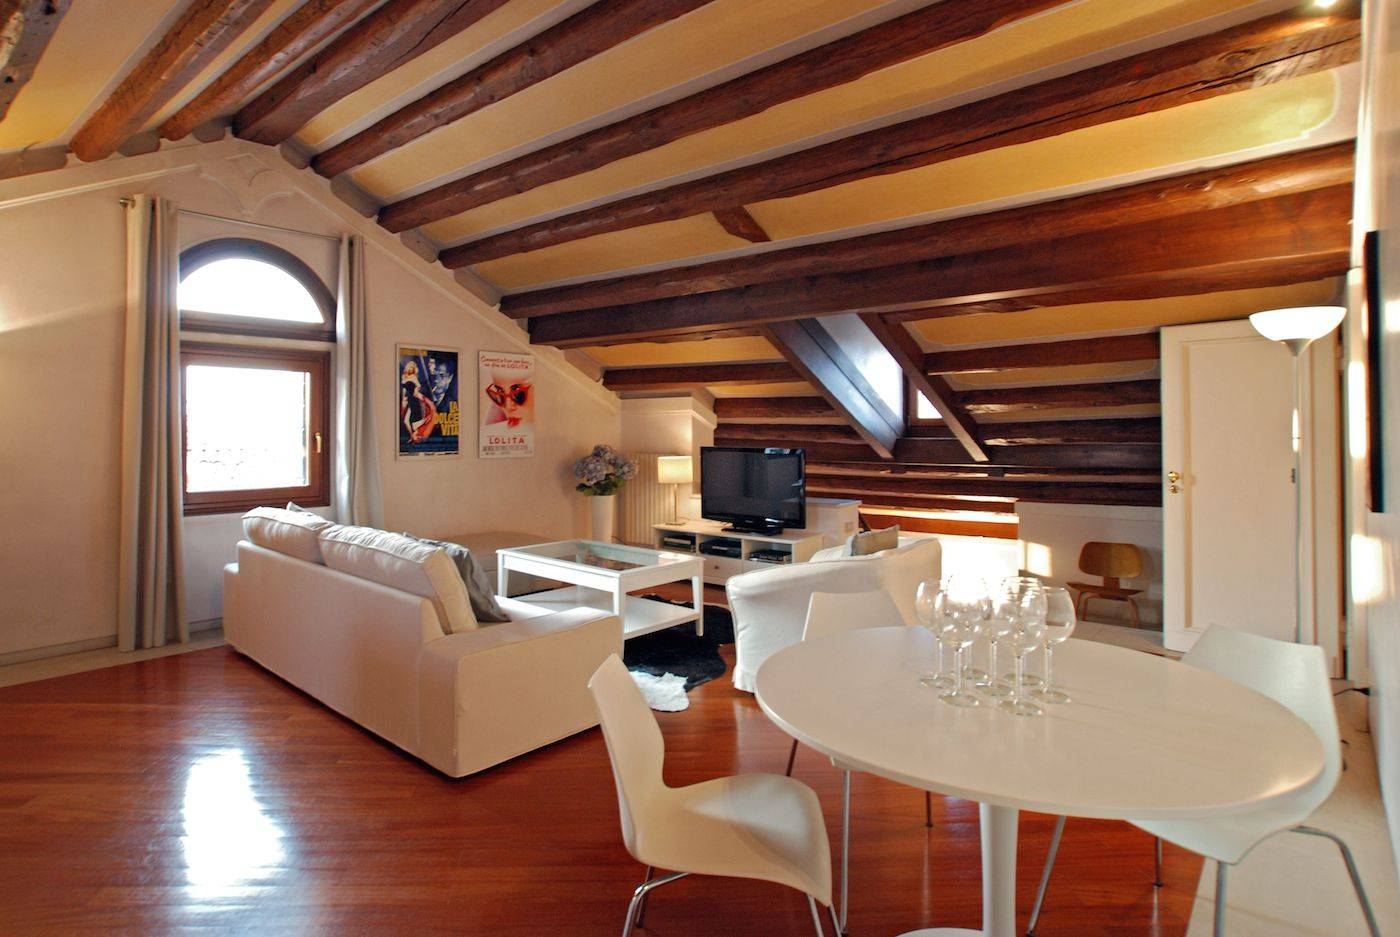 wercoming and spacious, the attic living room can be used as the 4th bedroom